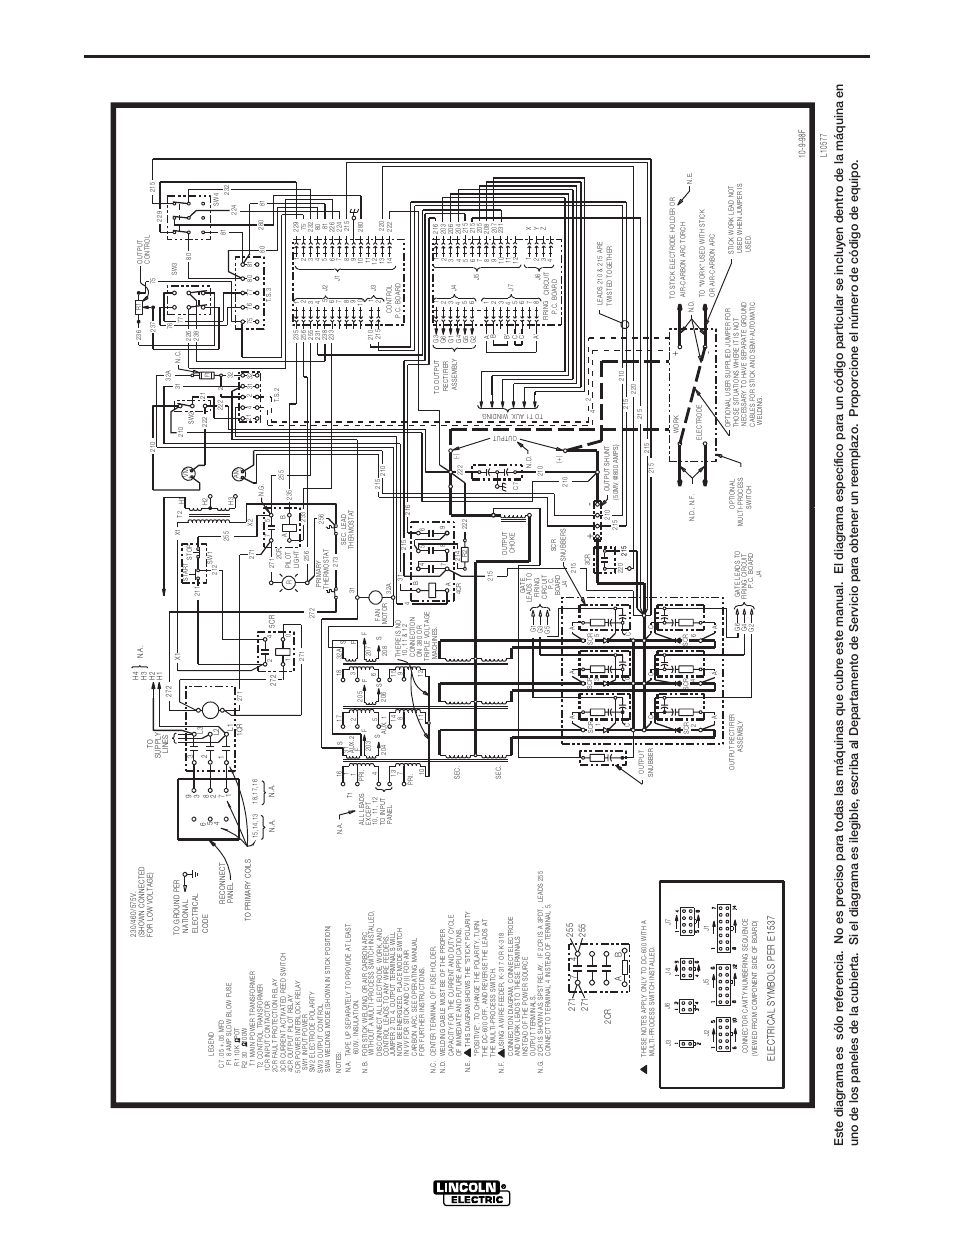 Lincoln 225 Welder Generator Wiring Diagram Lift Gate